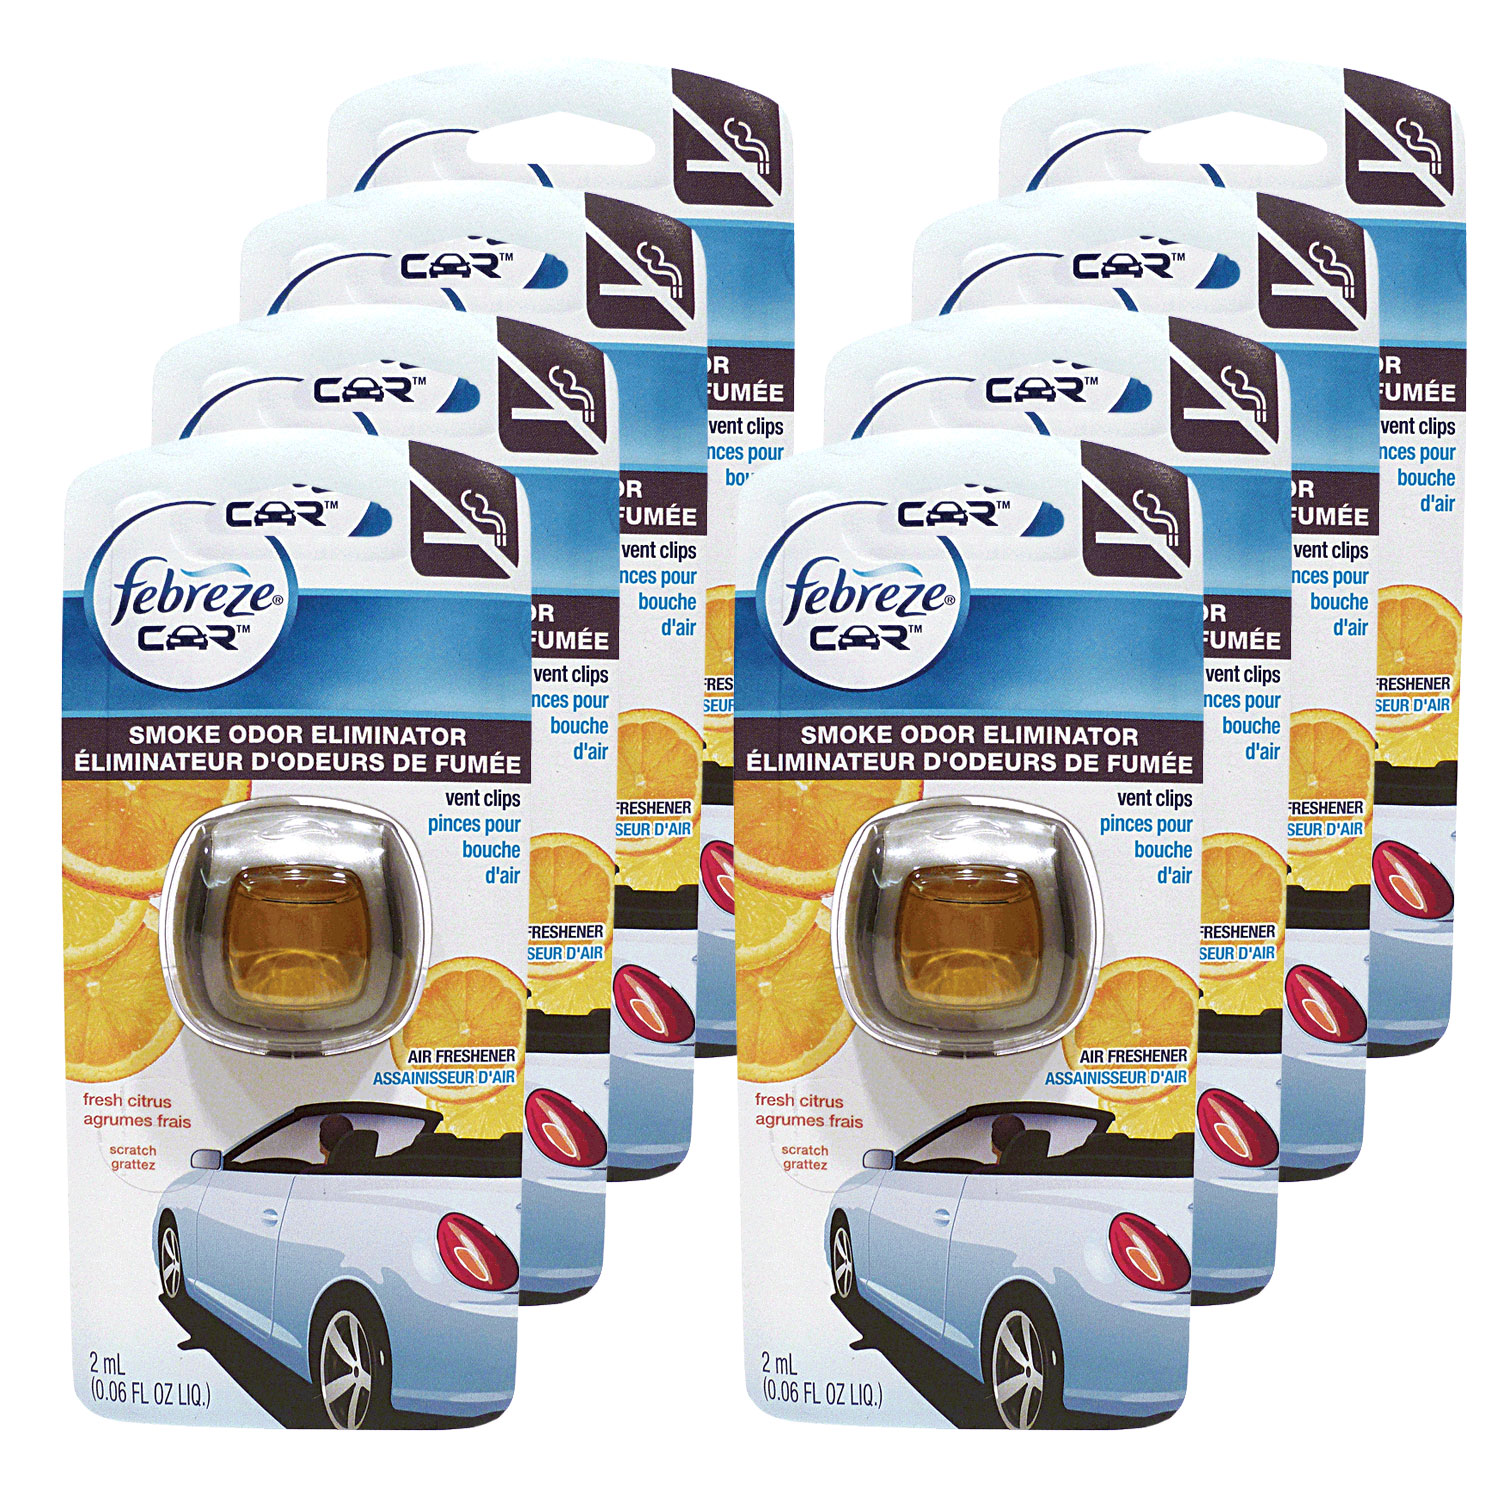 Febreze Car Vent Clips Air Freshener and Smoke Odor Elimi...